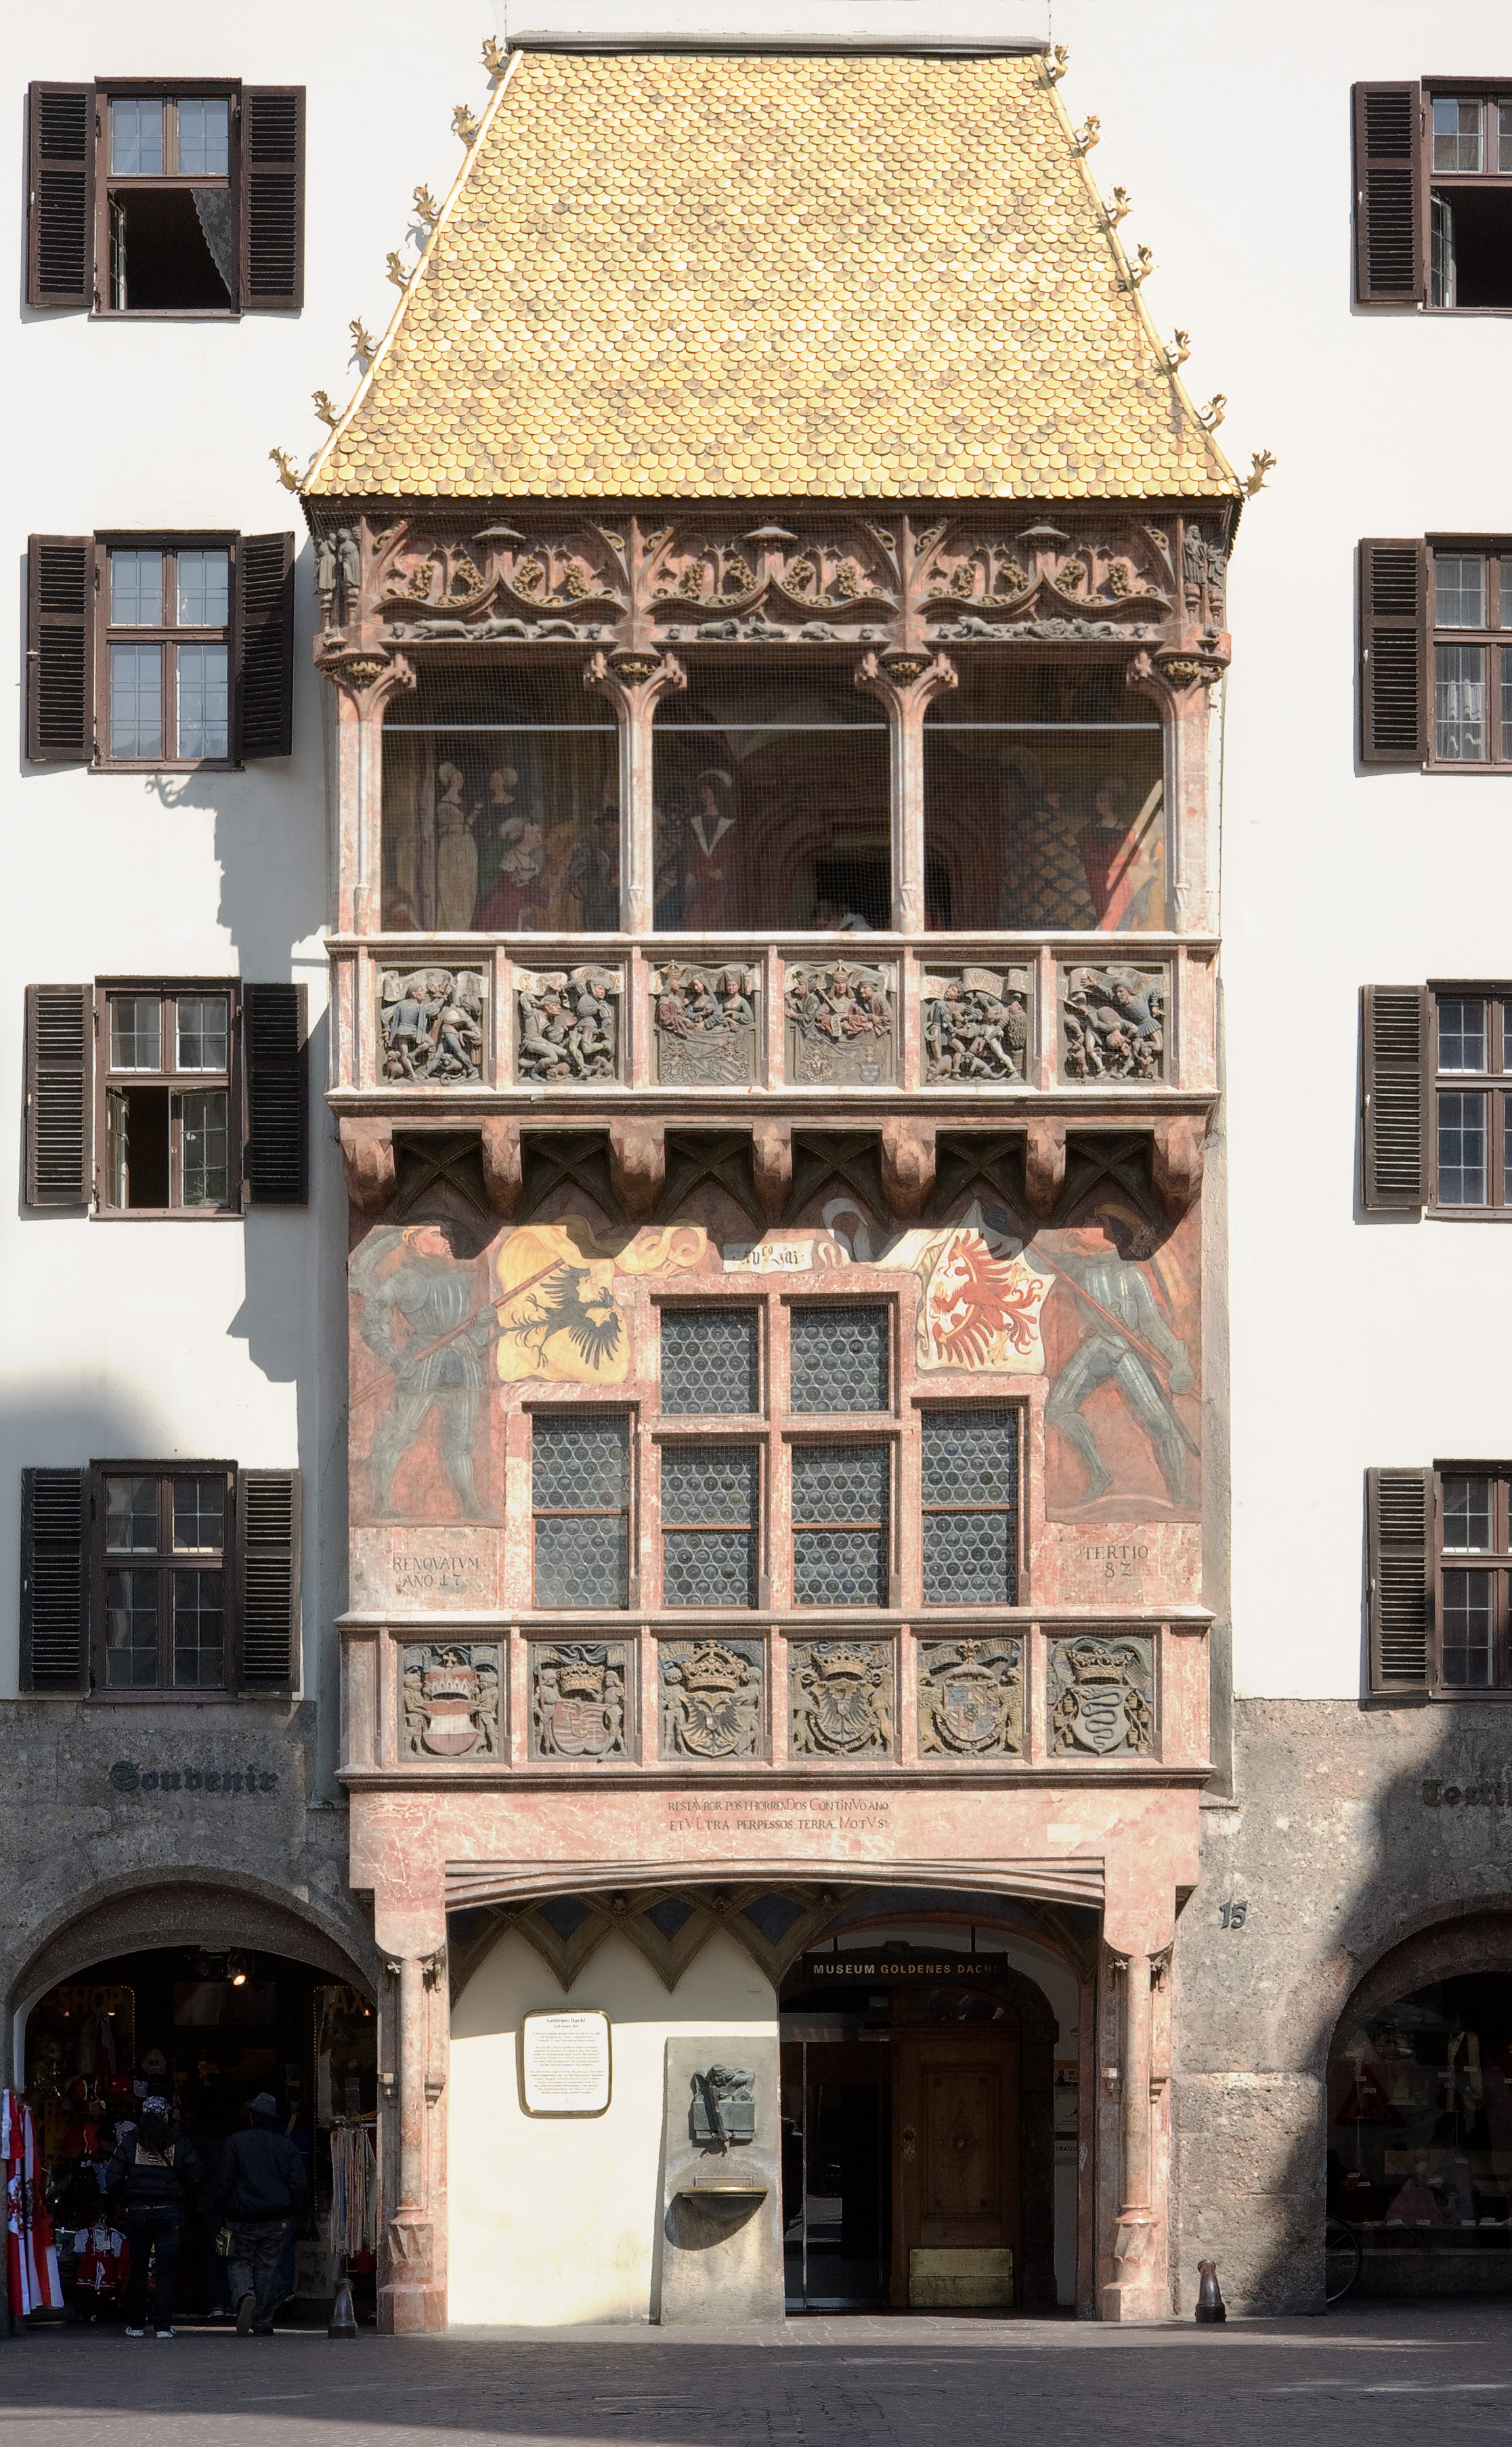 The Wittelsbach Court In Munich History And Authority In The Visual